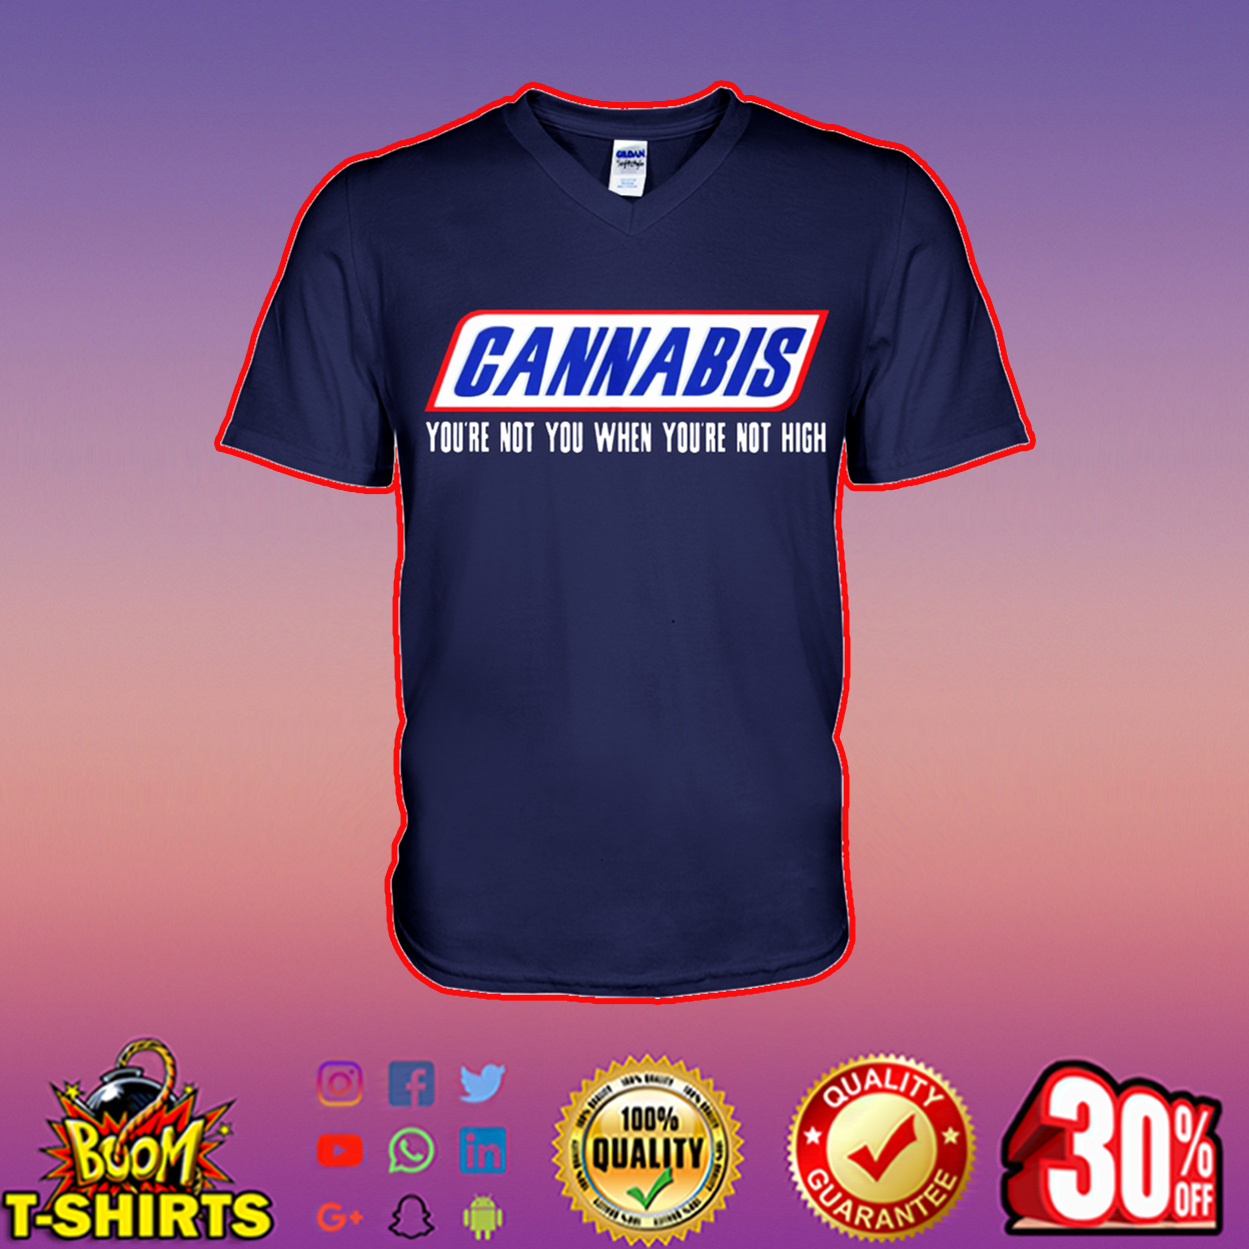 Cannabis you're not you when you're not high v-neck